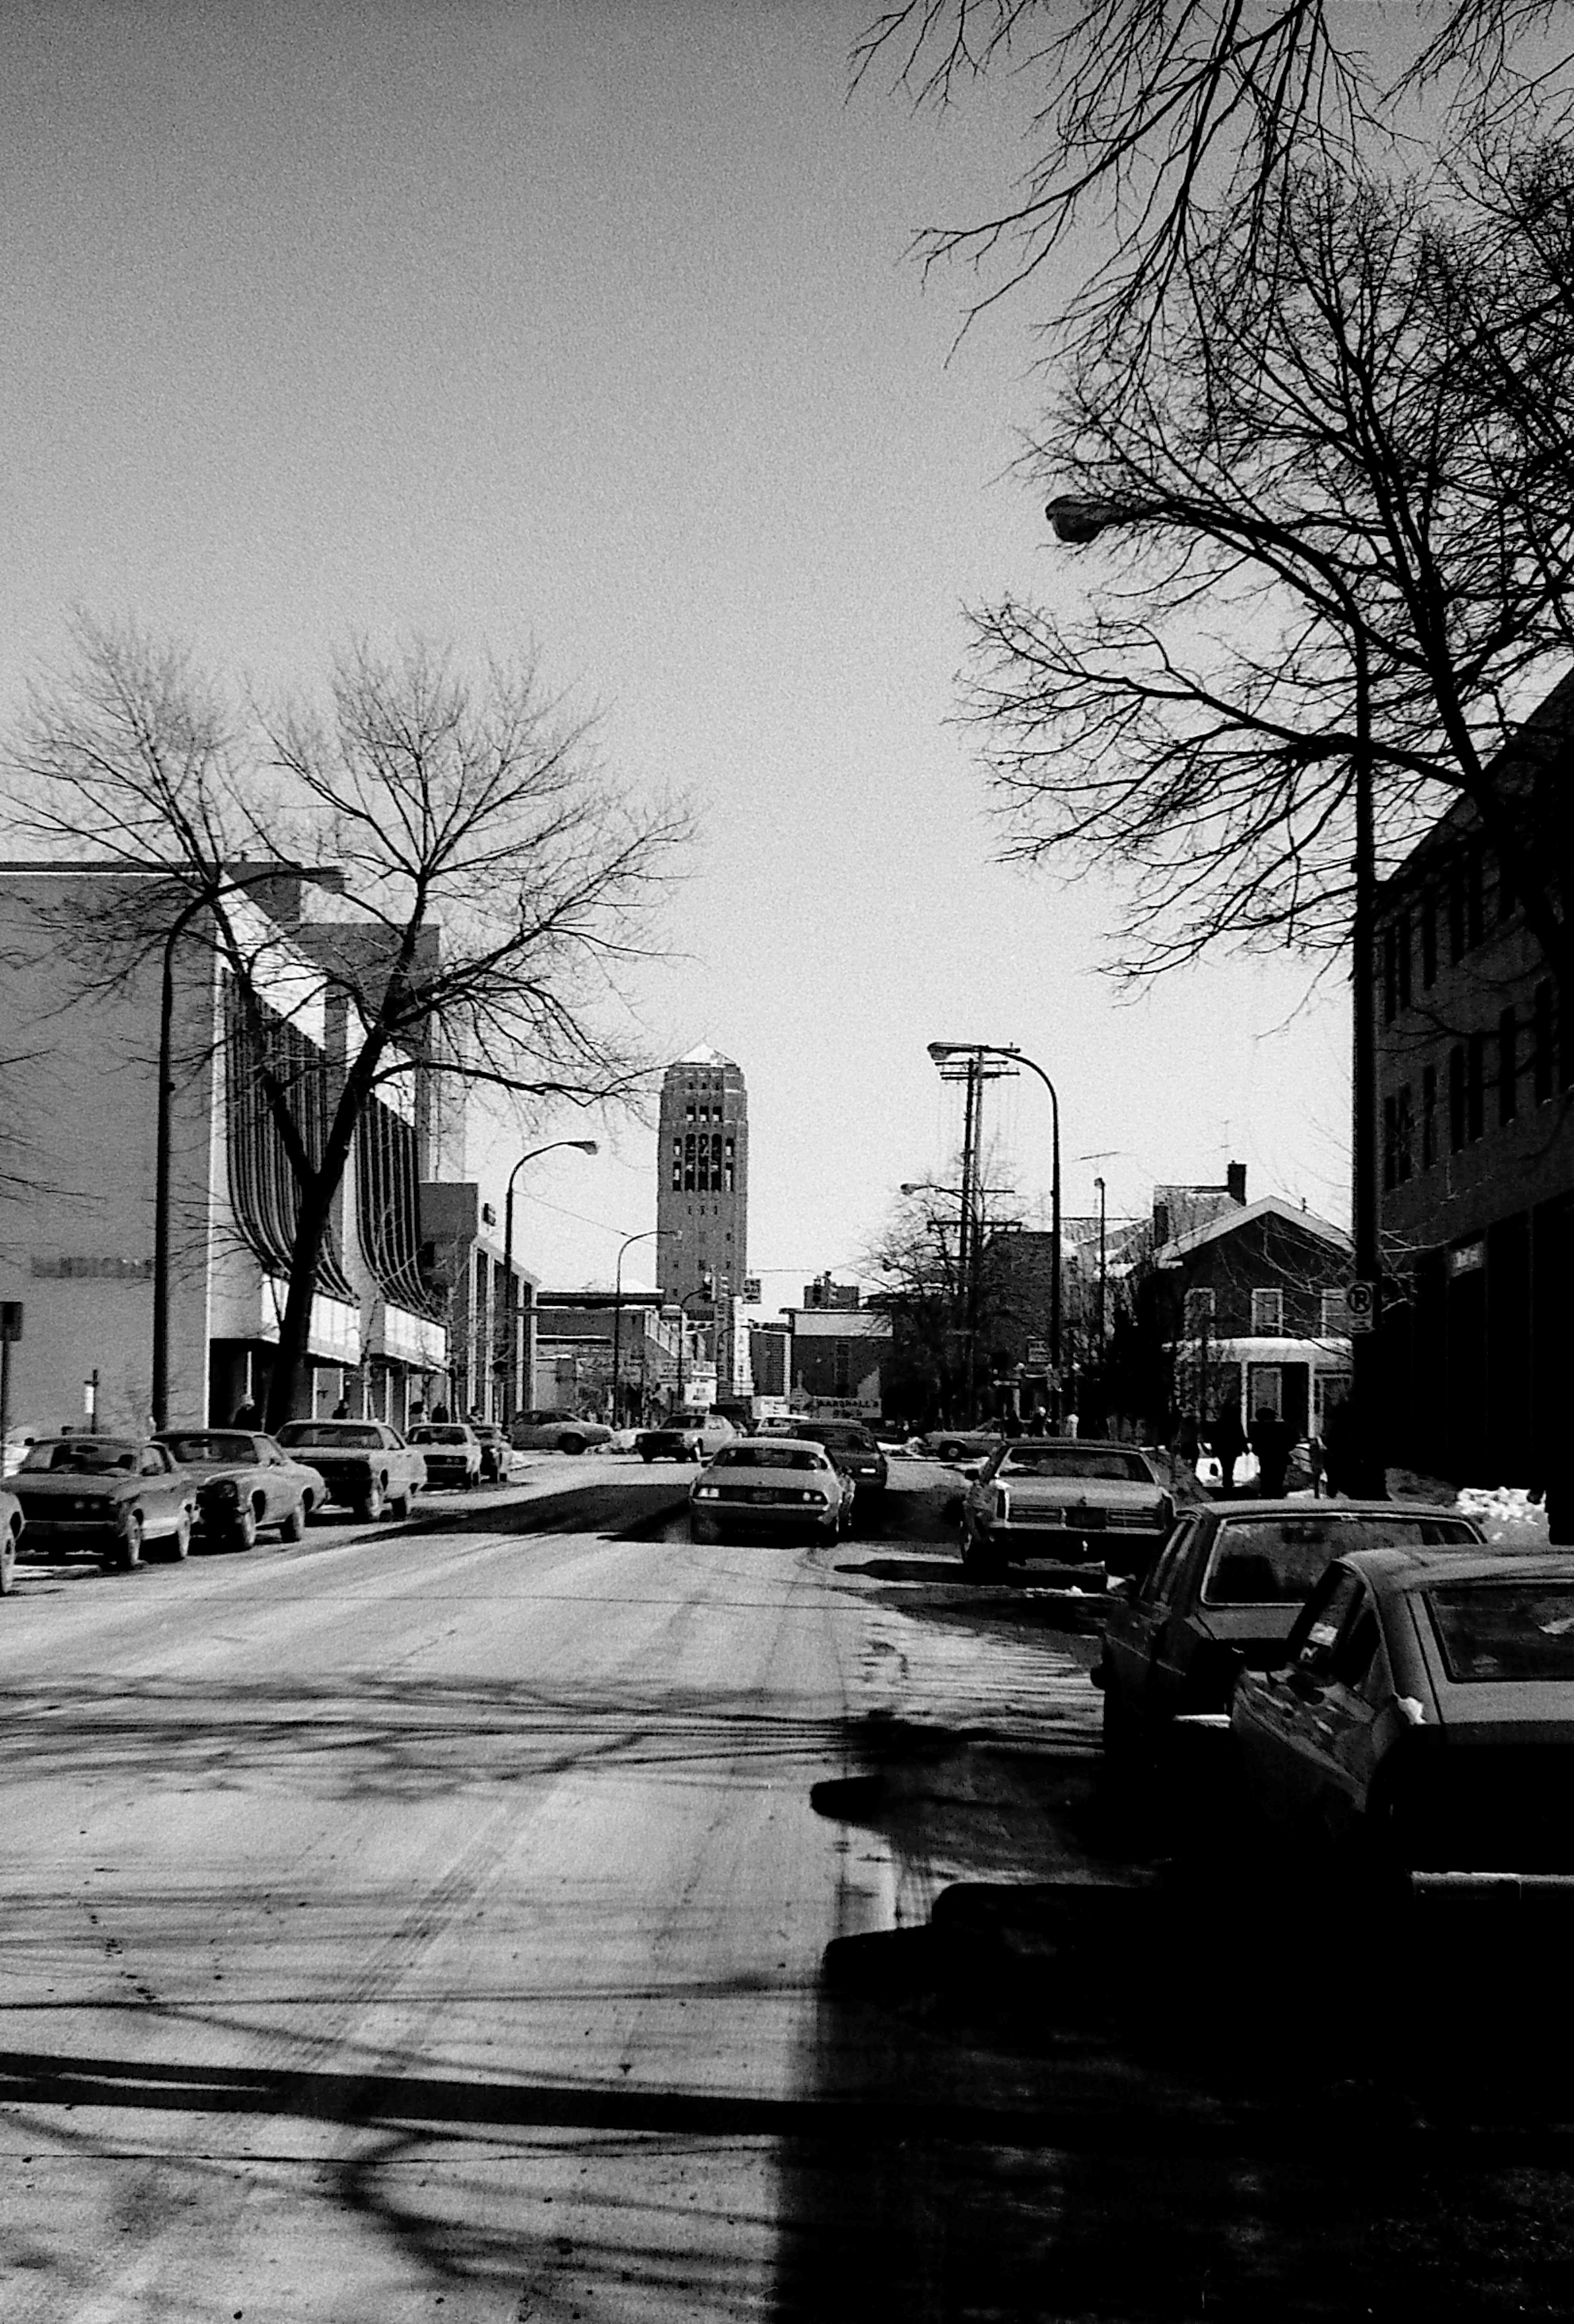 Looking East on Liberty Street from S Division, 1978 image